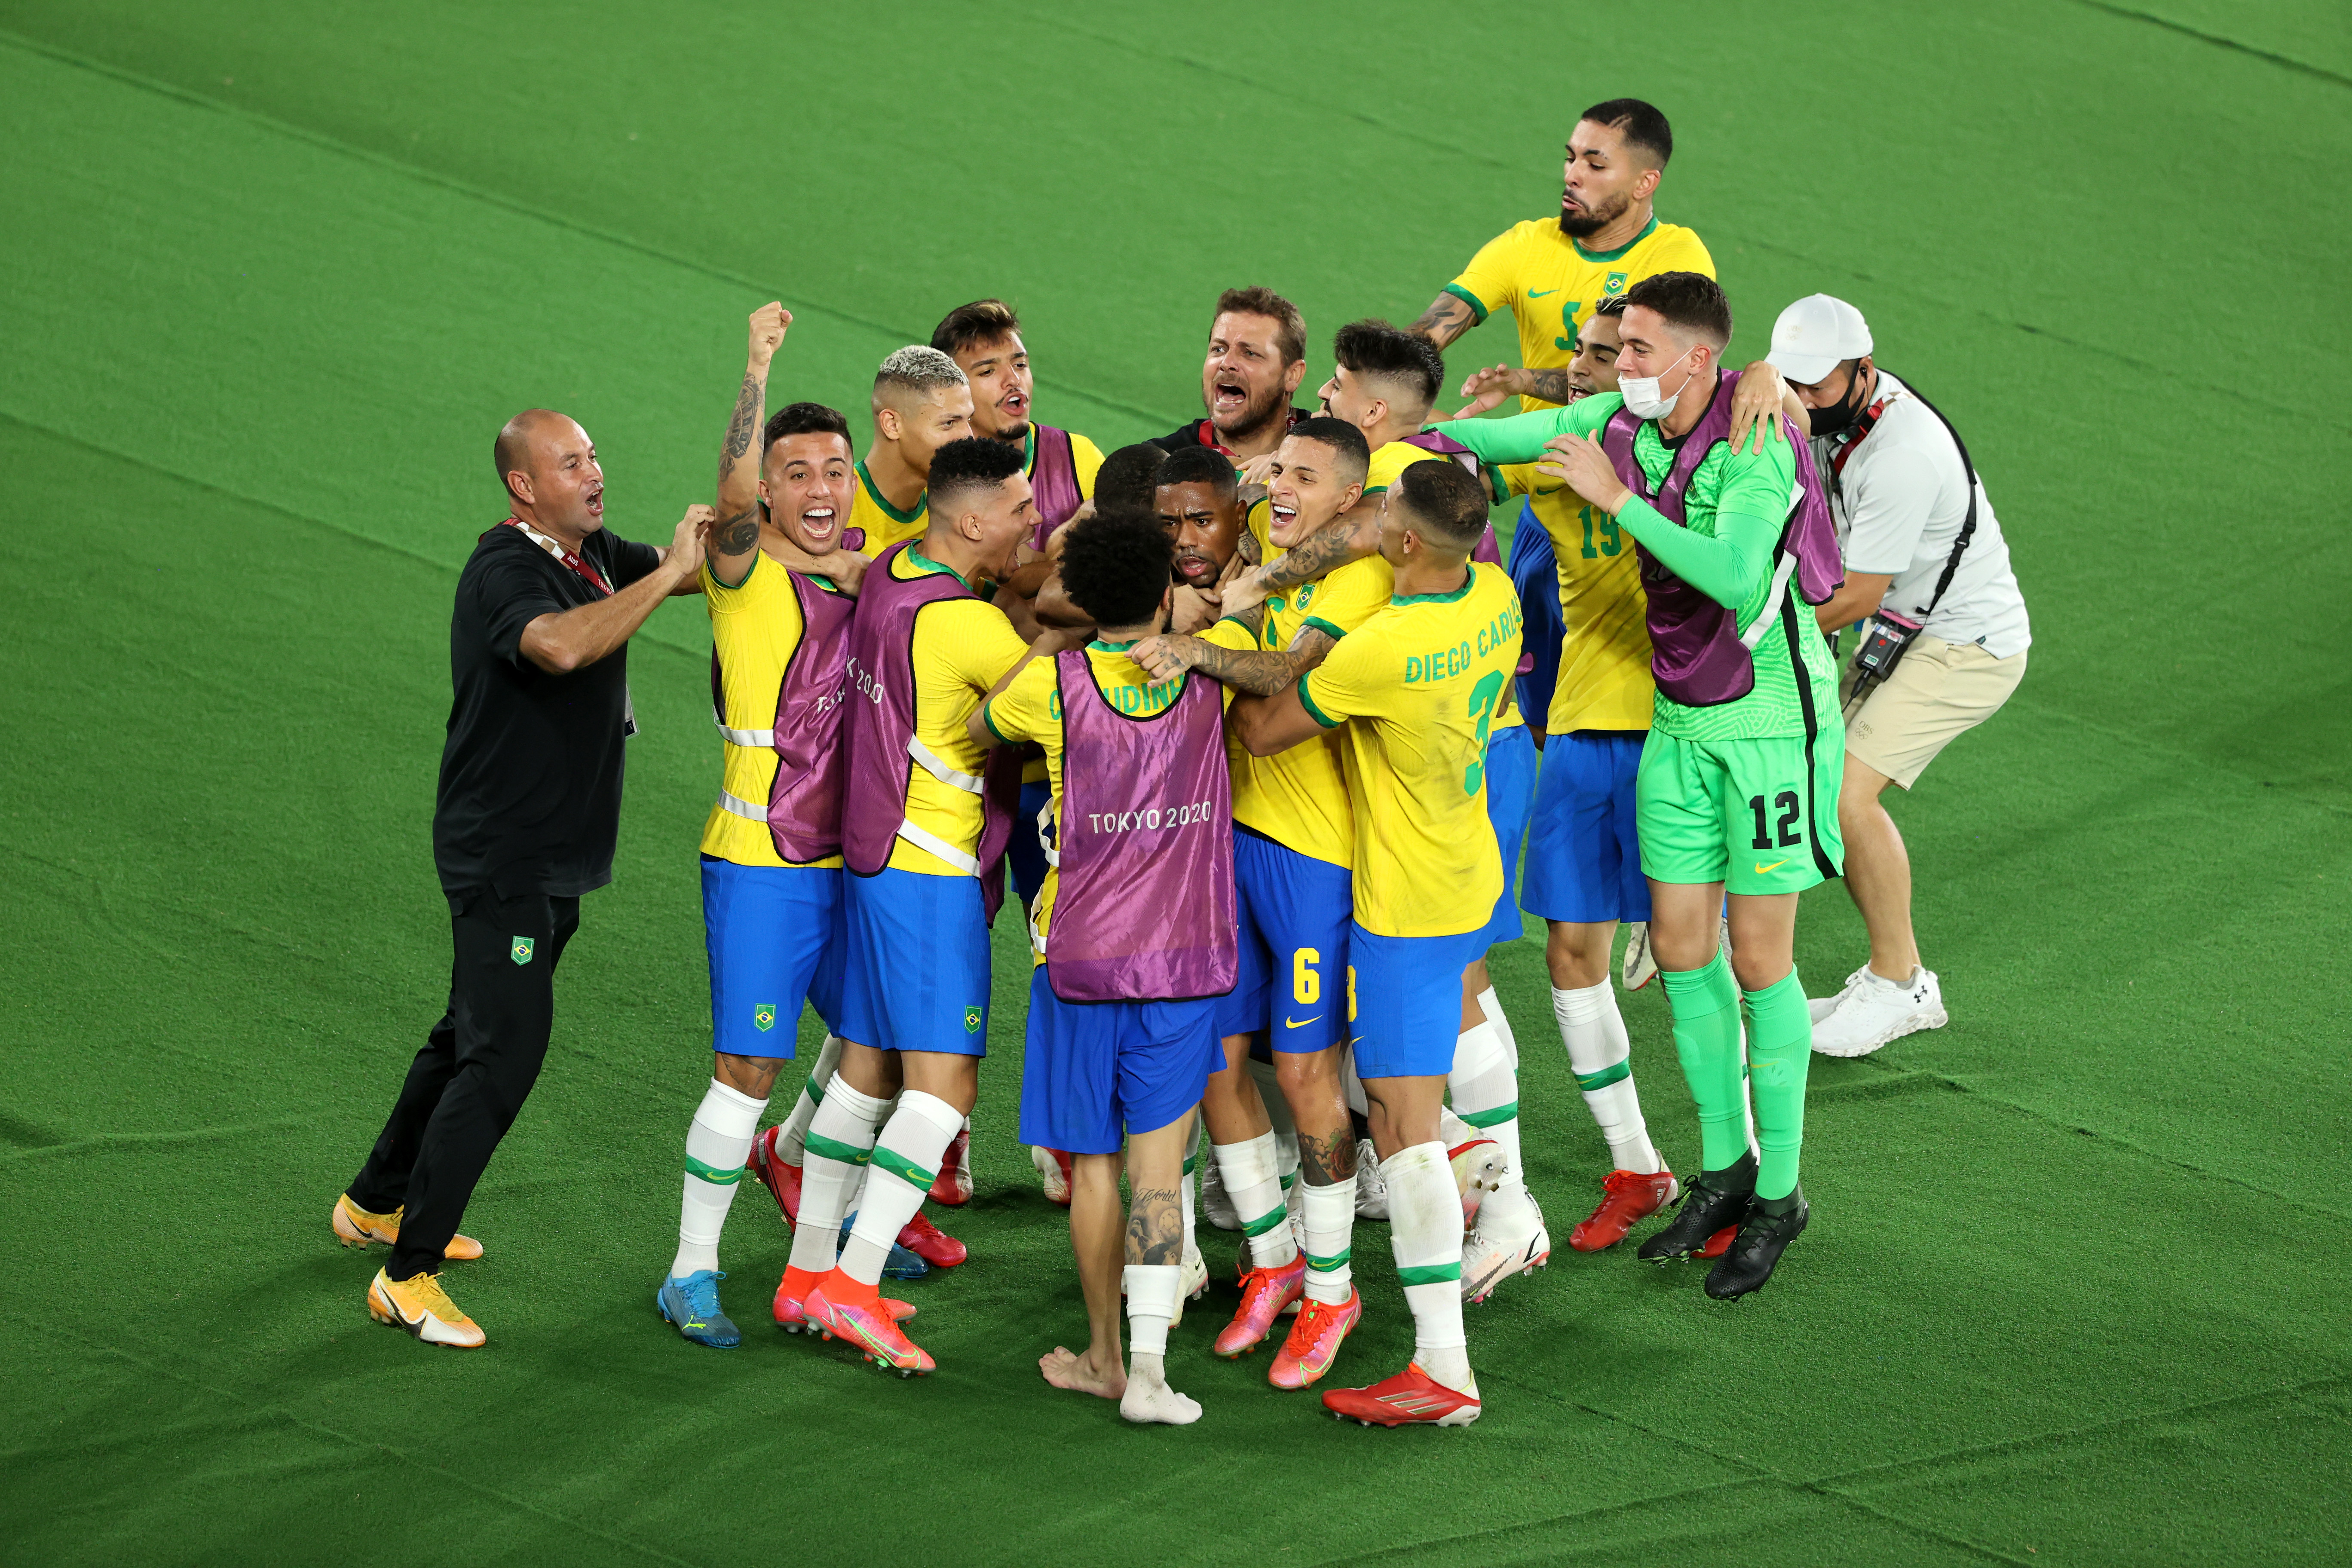 Malcom #17 of Team Brazil celebrates with team mates after scoring their side's second goal during the Men's Gold Medal Match between Brazil and Spain on day fifteen of the Tokyo 2020 Olympic Games at International Stadium Yokohama on August 07, 2021 in Yokohama, Kanagawa, Japan.